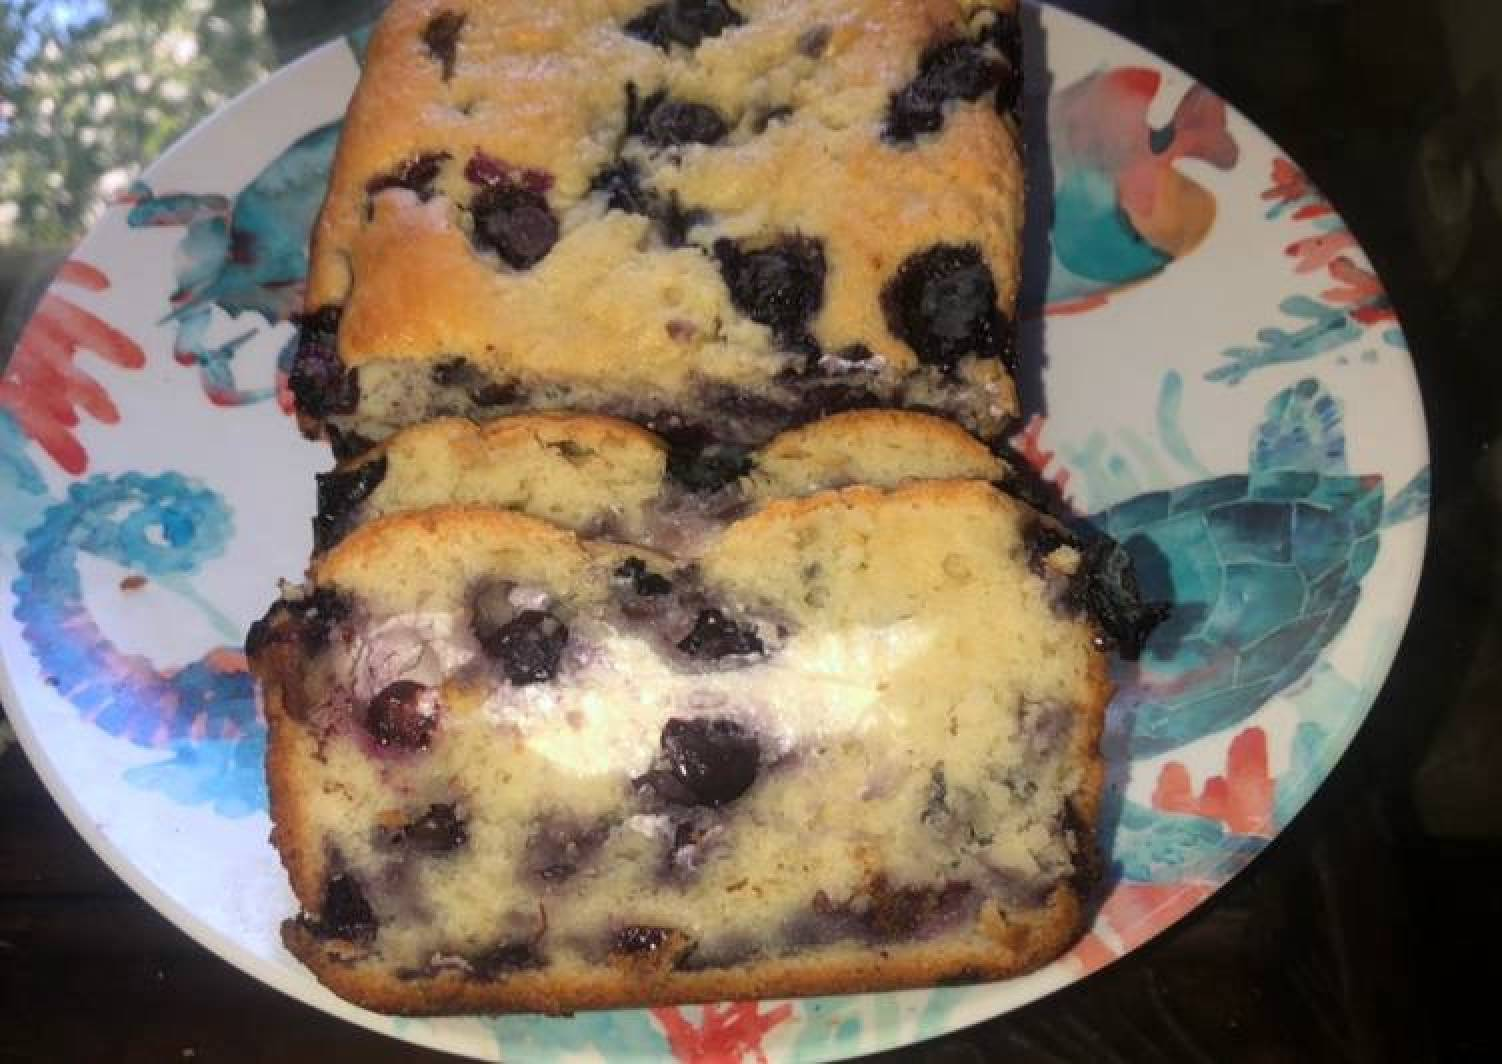 Cream cheese stuffed blueberry loaf